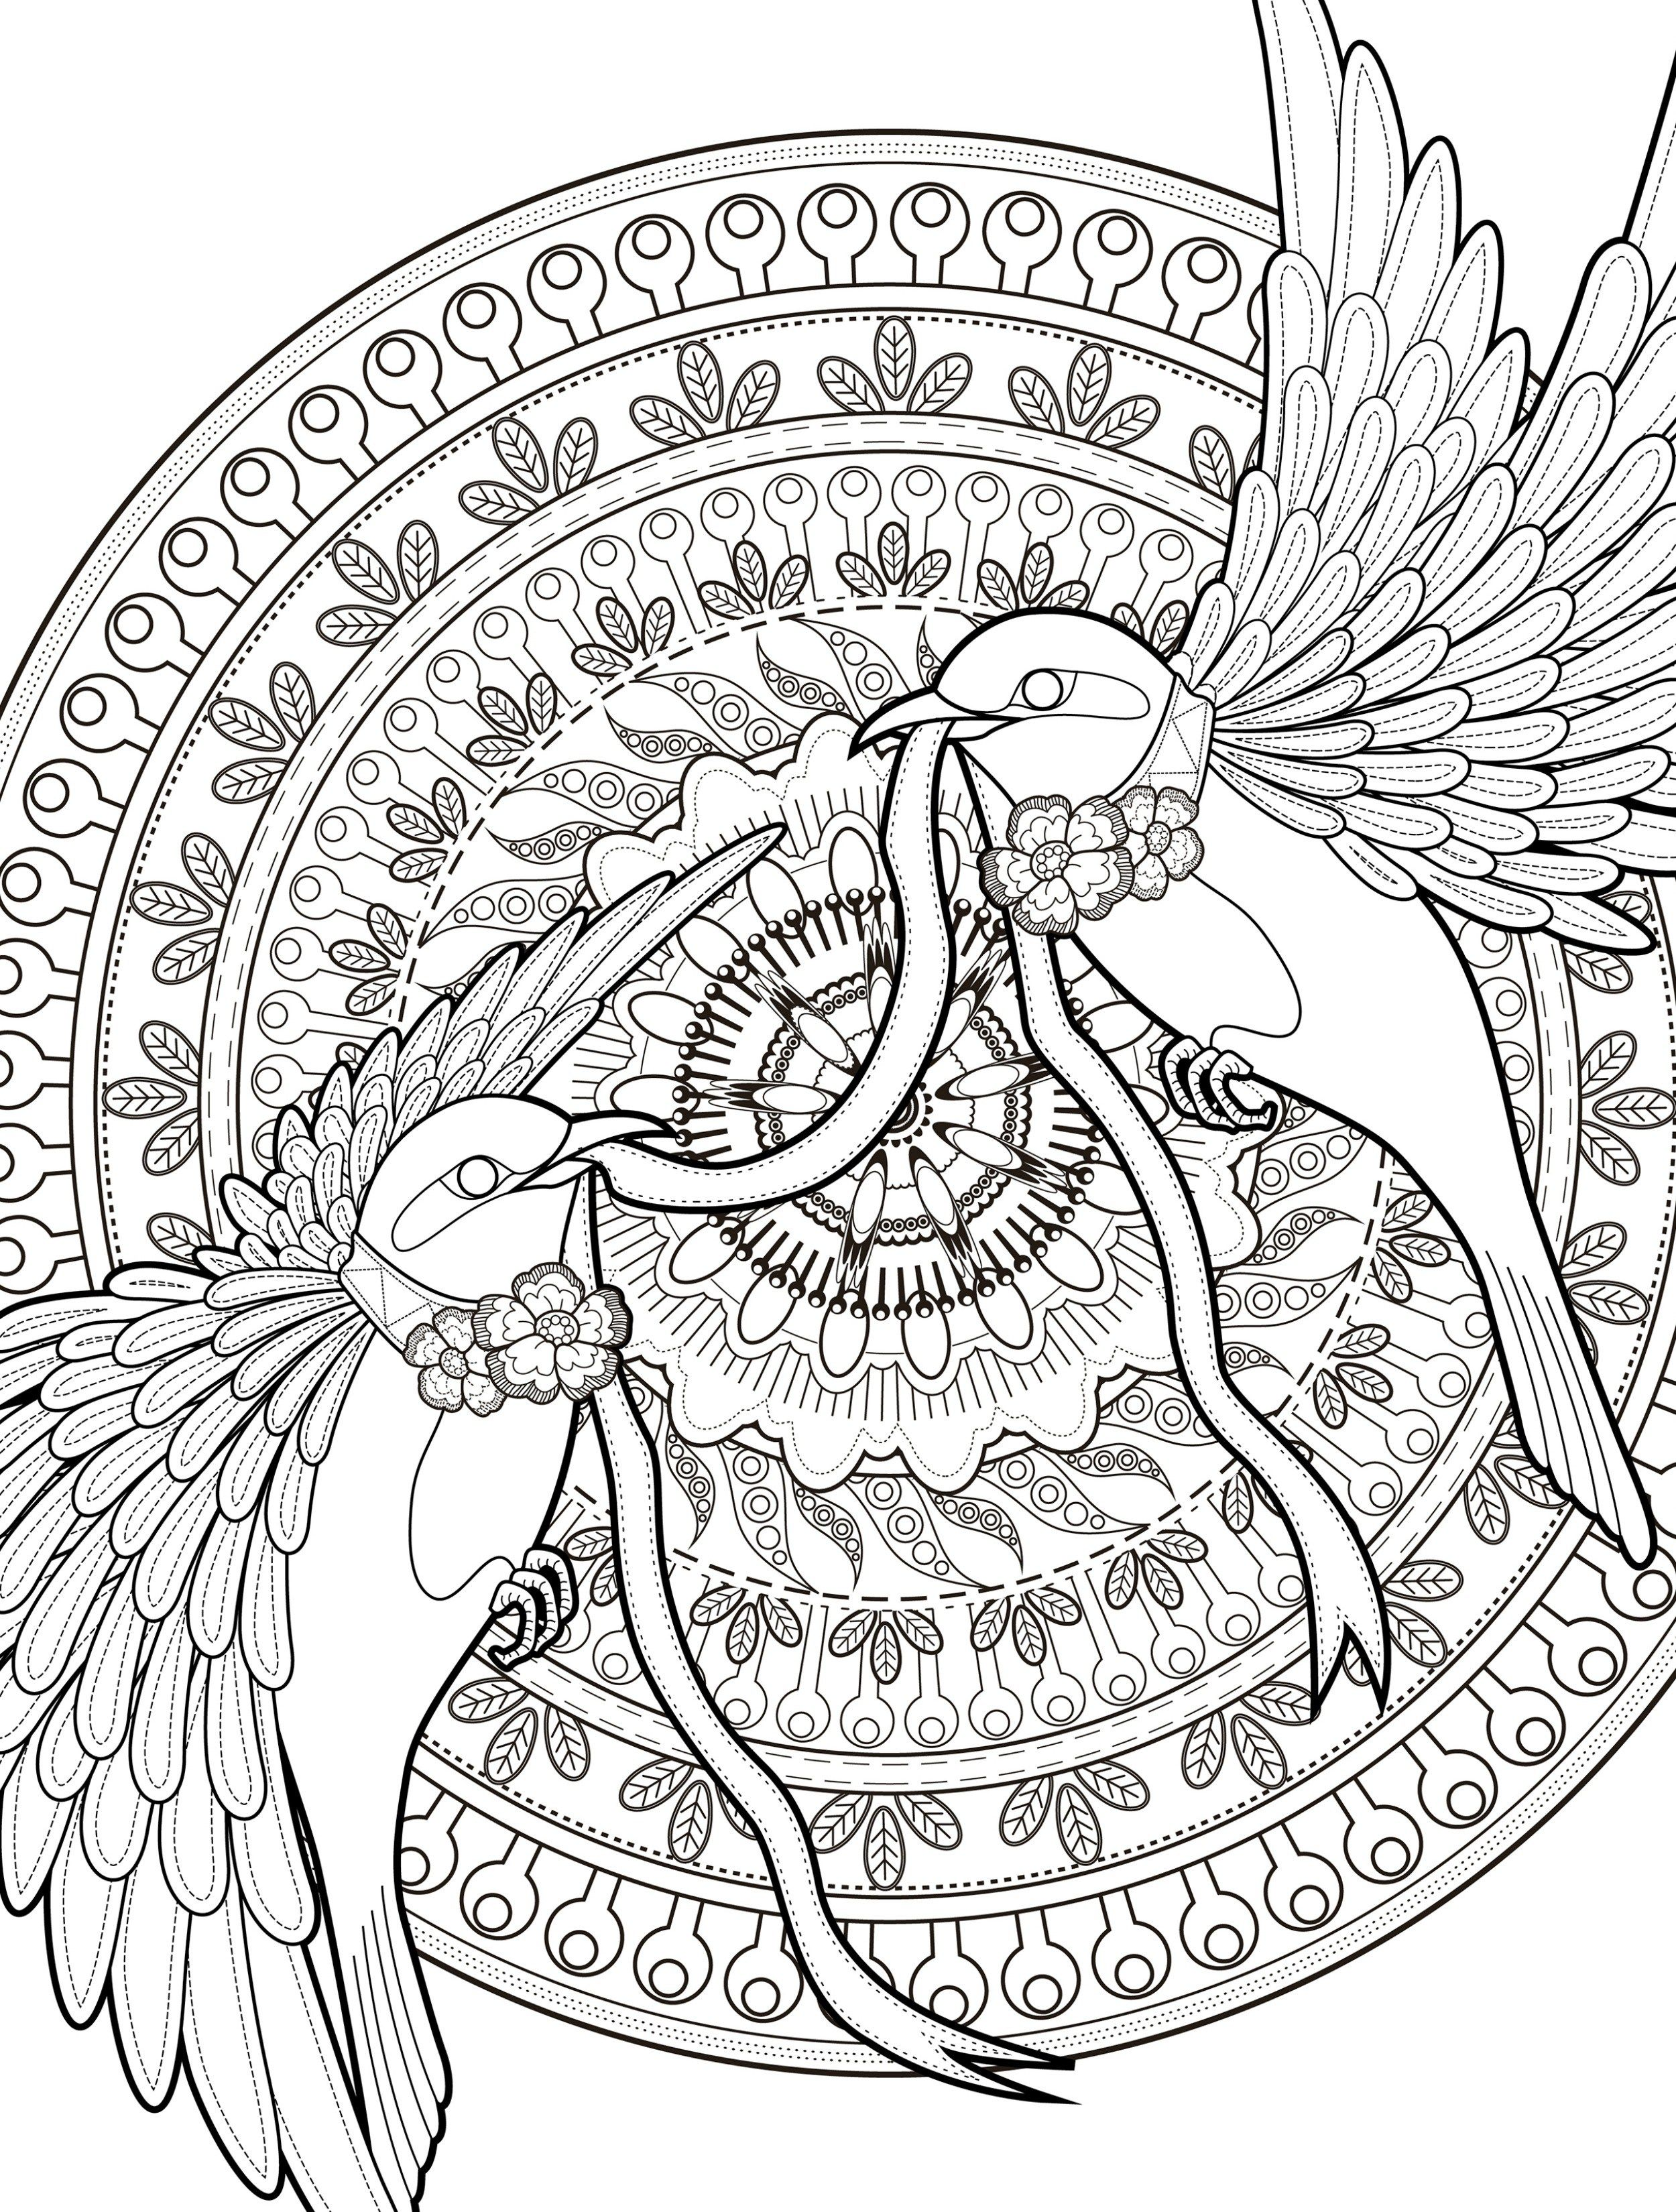 more free printable adult coloring pages colorzzz pinterest